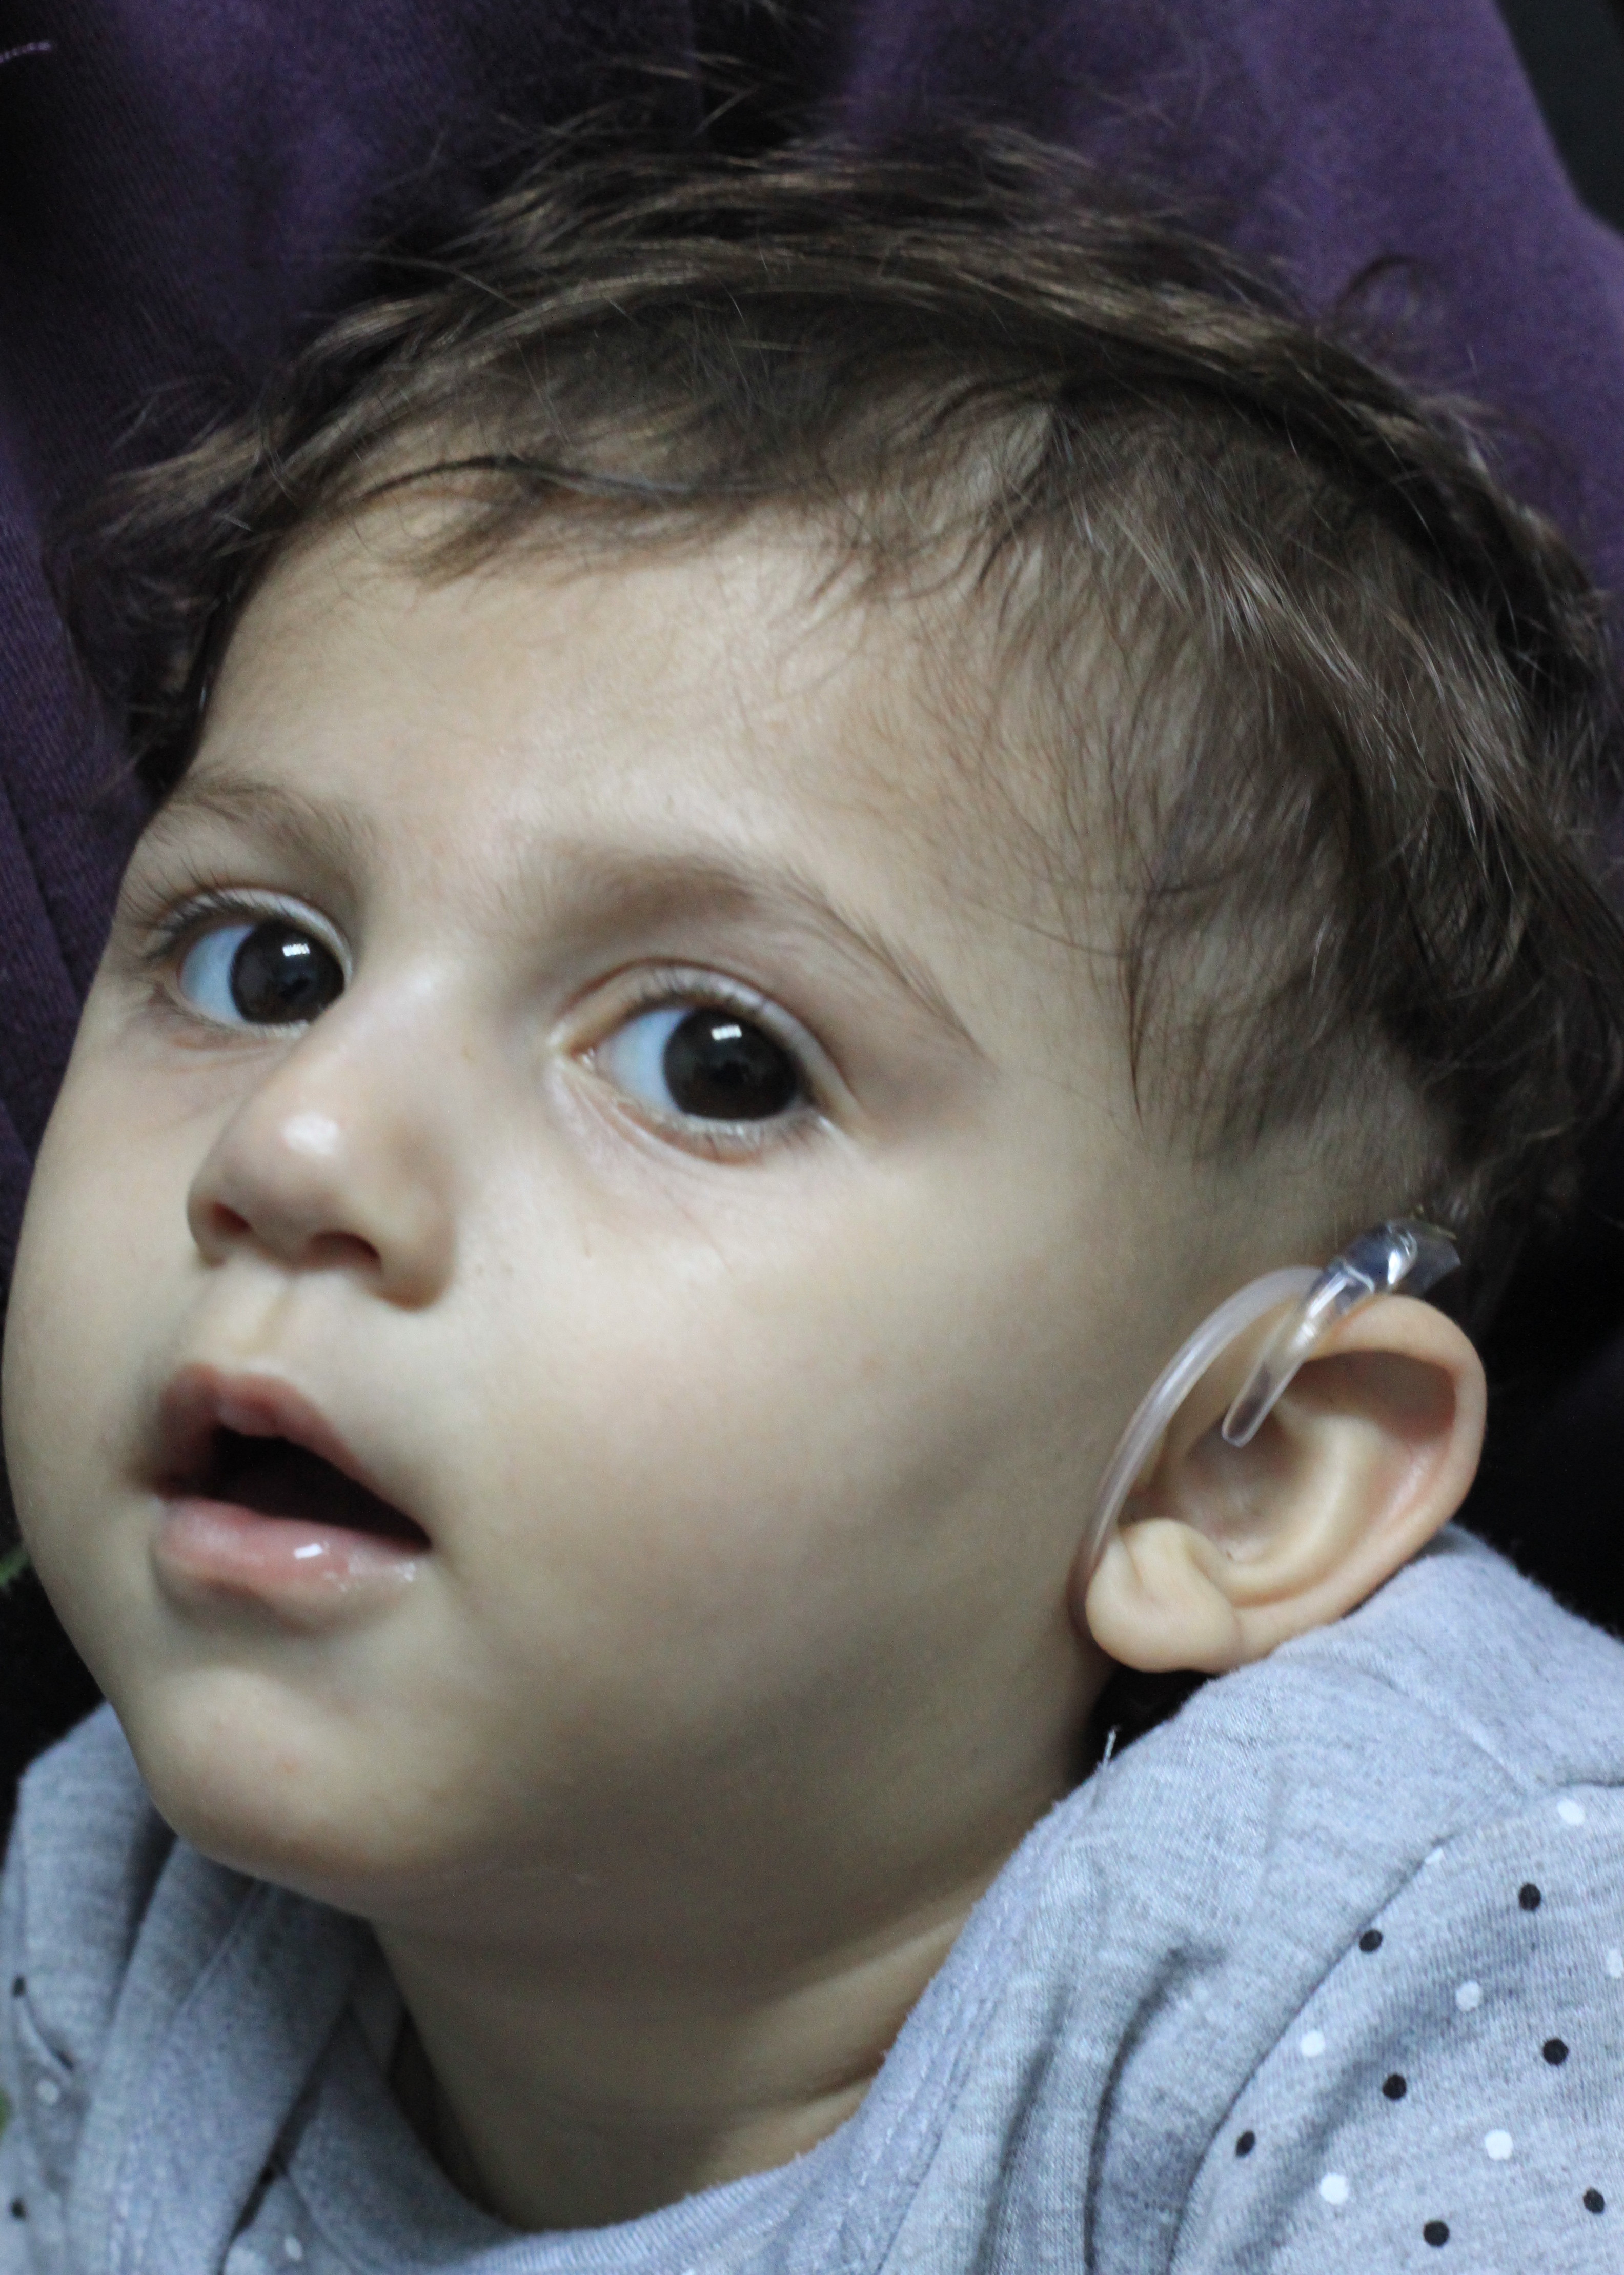 Prince Sultan Chair gives 18 month-old Palestinian girl the gift of hearing